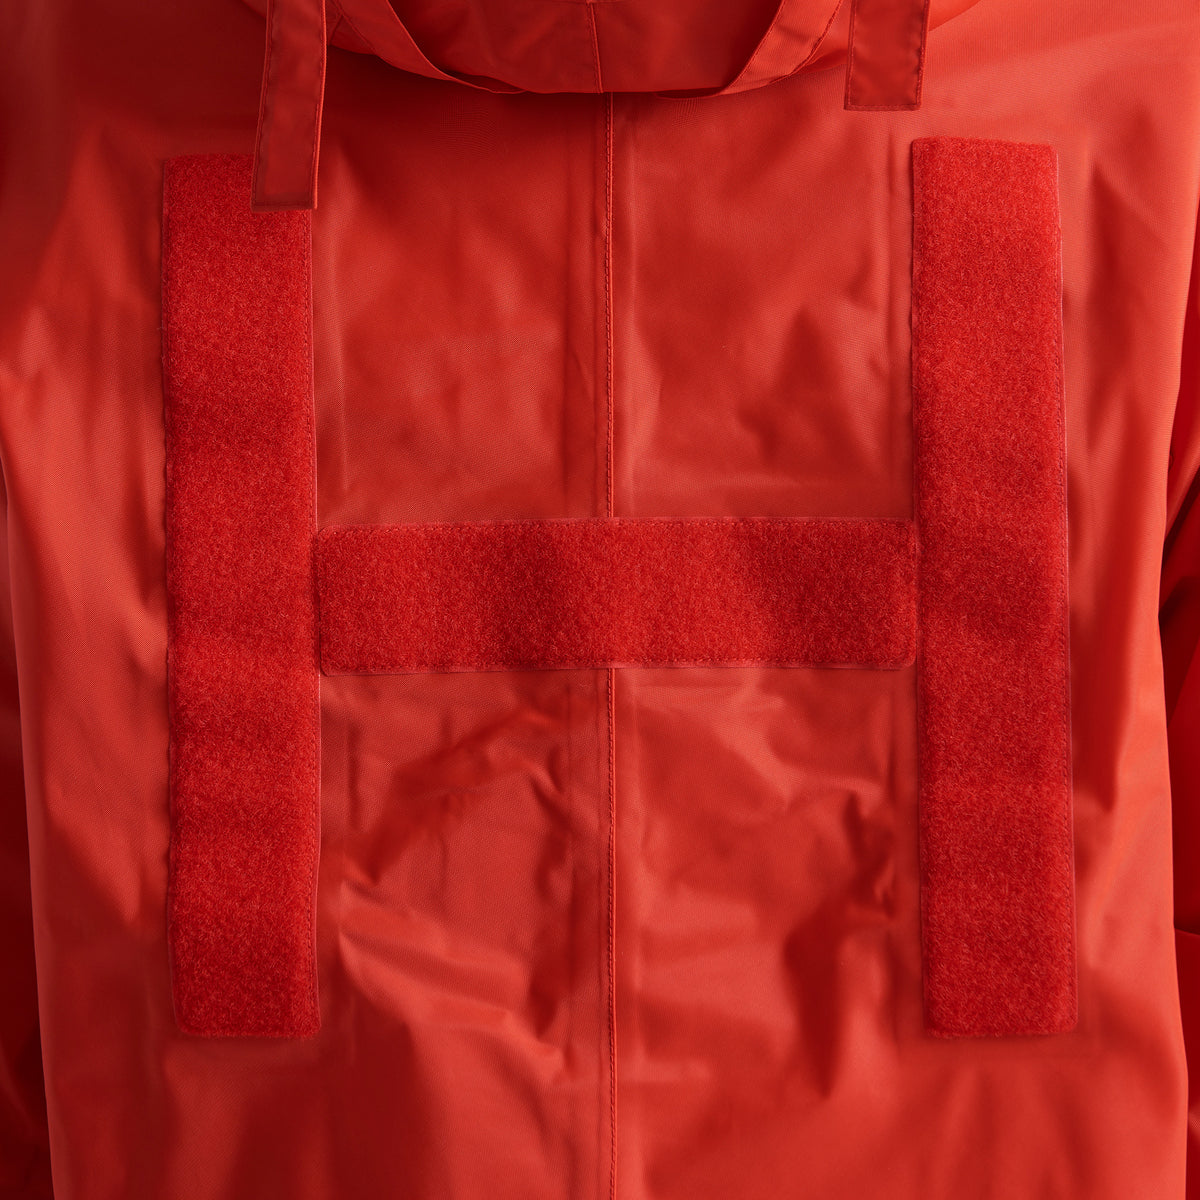 Henri Lloyd X Nigel Cabourn Waterproof Spray Jacket Old Red Velcro